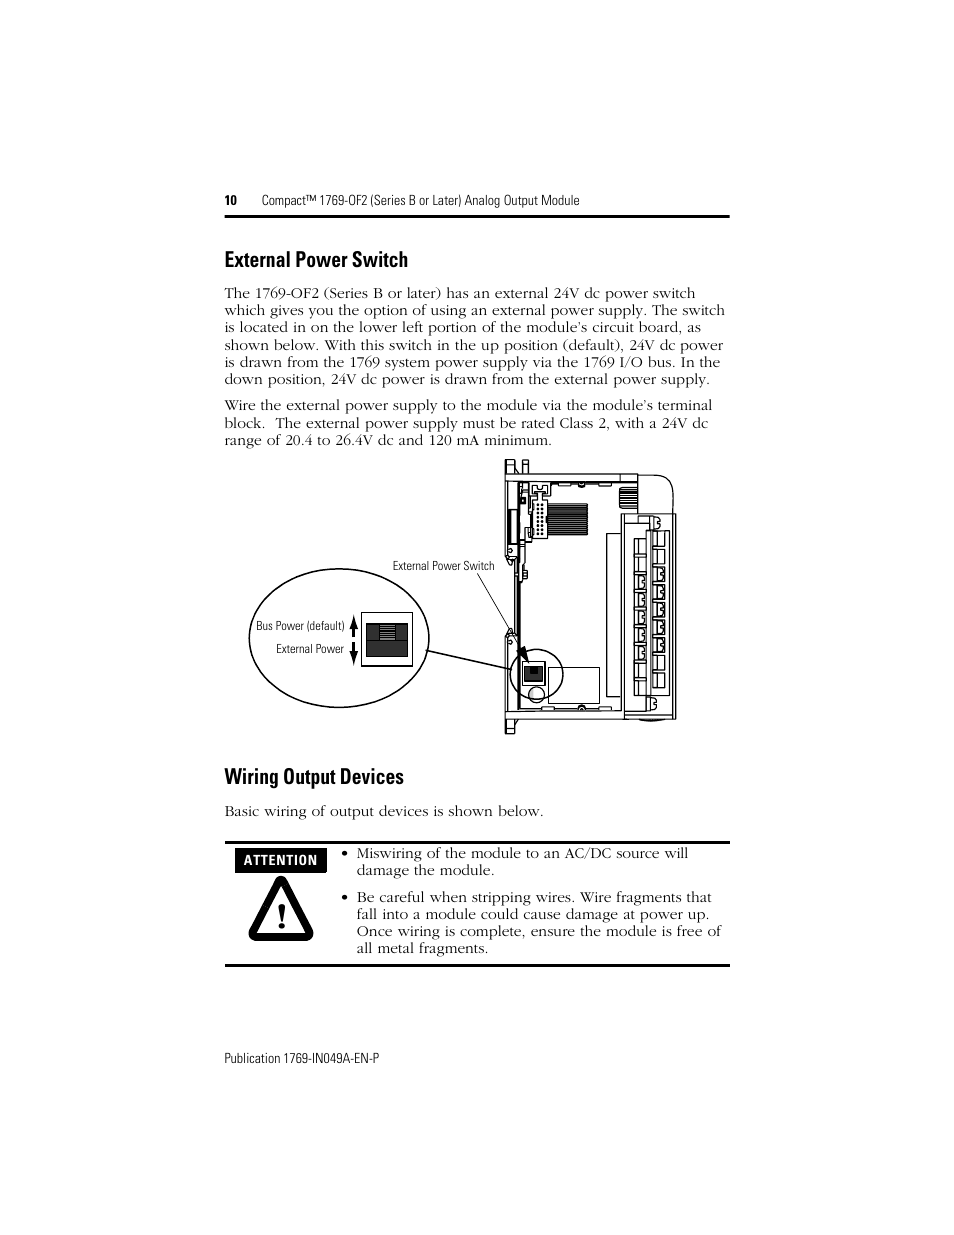 External Power Switch Wiring Output Devices Rockwell Automation Wire The In As Shown Below 1769 Of2 Compact Series B Or Later Analog Module User Manual Page 10 24